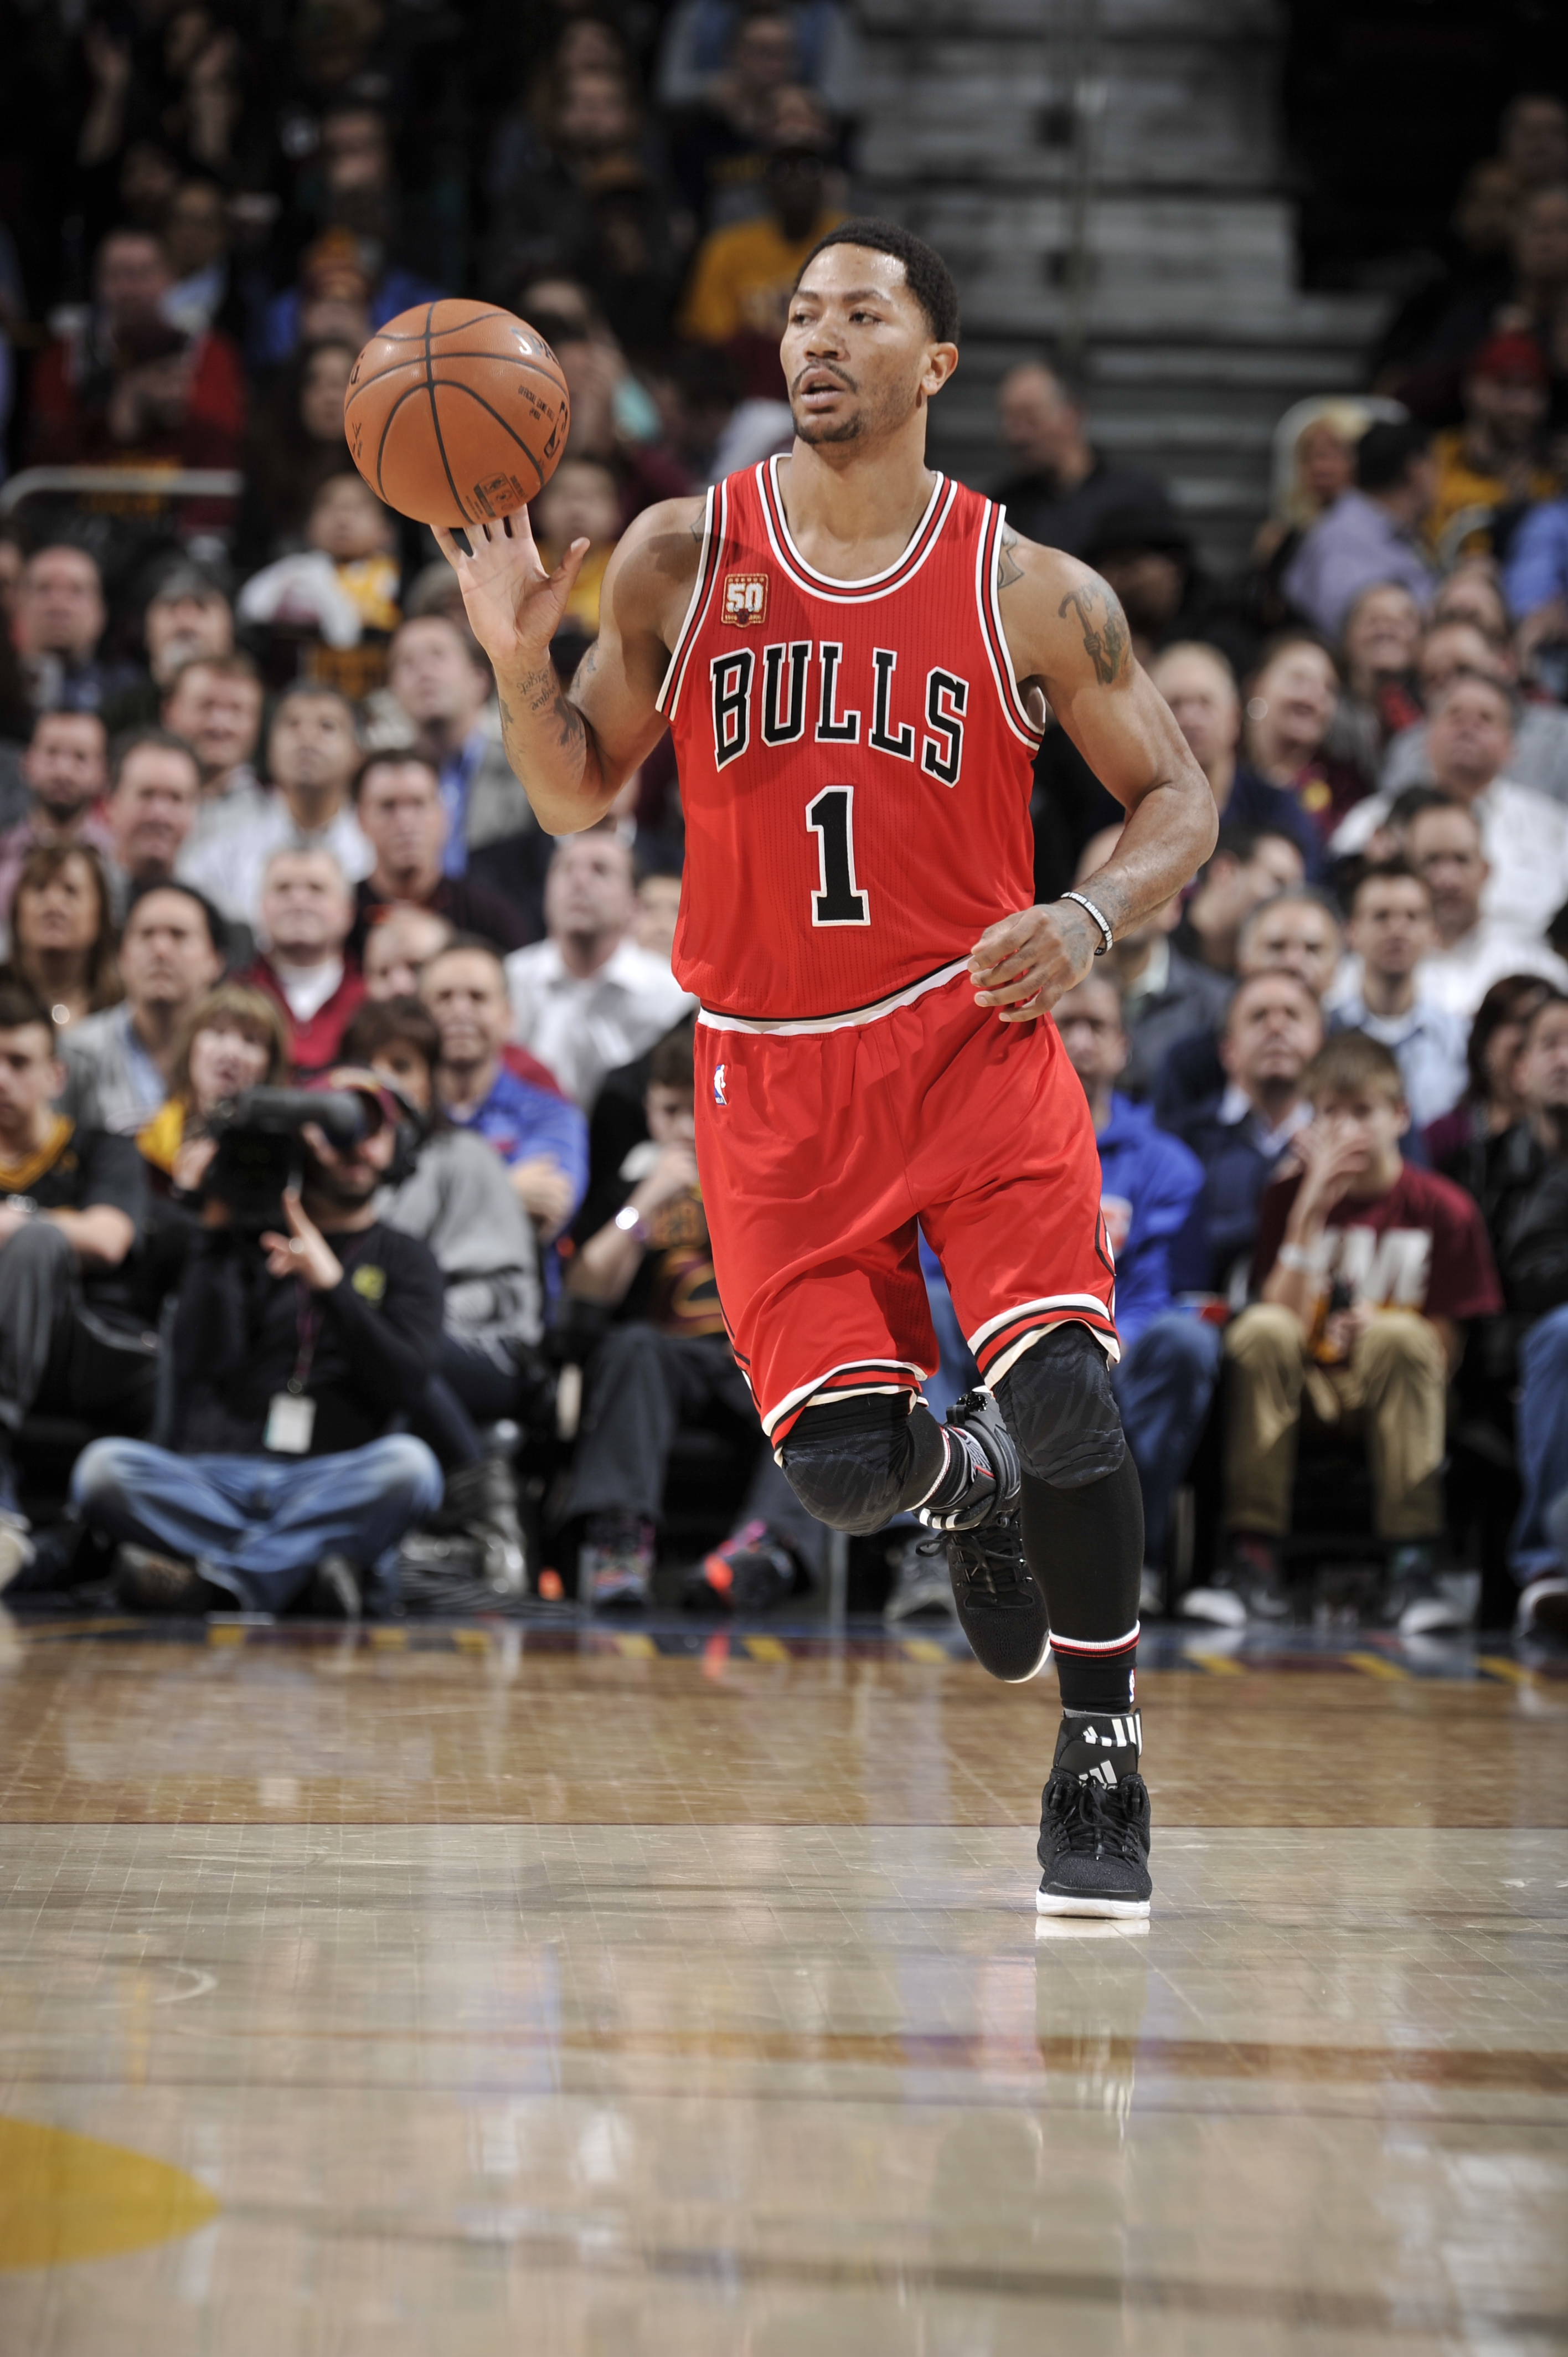 CLEVELAND, OH - FEBRUARY 18:  Derrick Rose #1 of the Chicago Bulls brings the ball up court against the Cleveland Cavaliers on February 18, 2016 at Quicken Loans Arena in Cleveland, Ohio. (Photo by David Liam Kyle/NBAE via Getty Images)